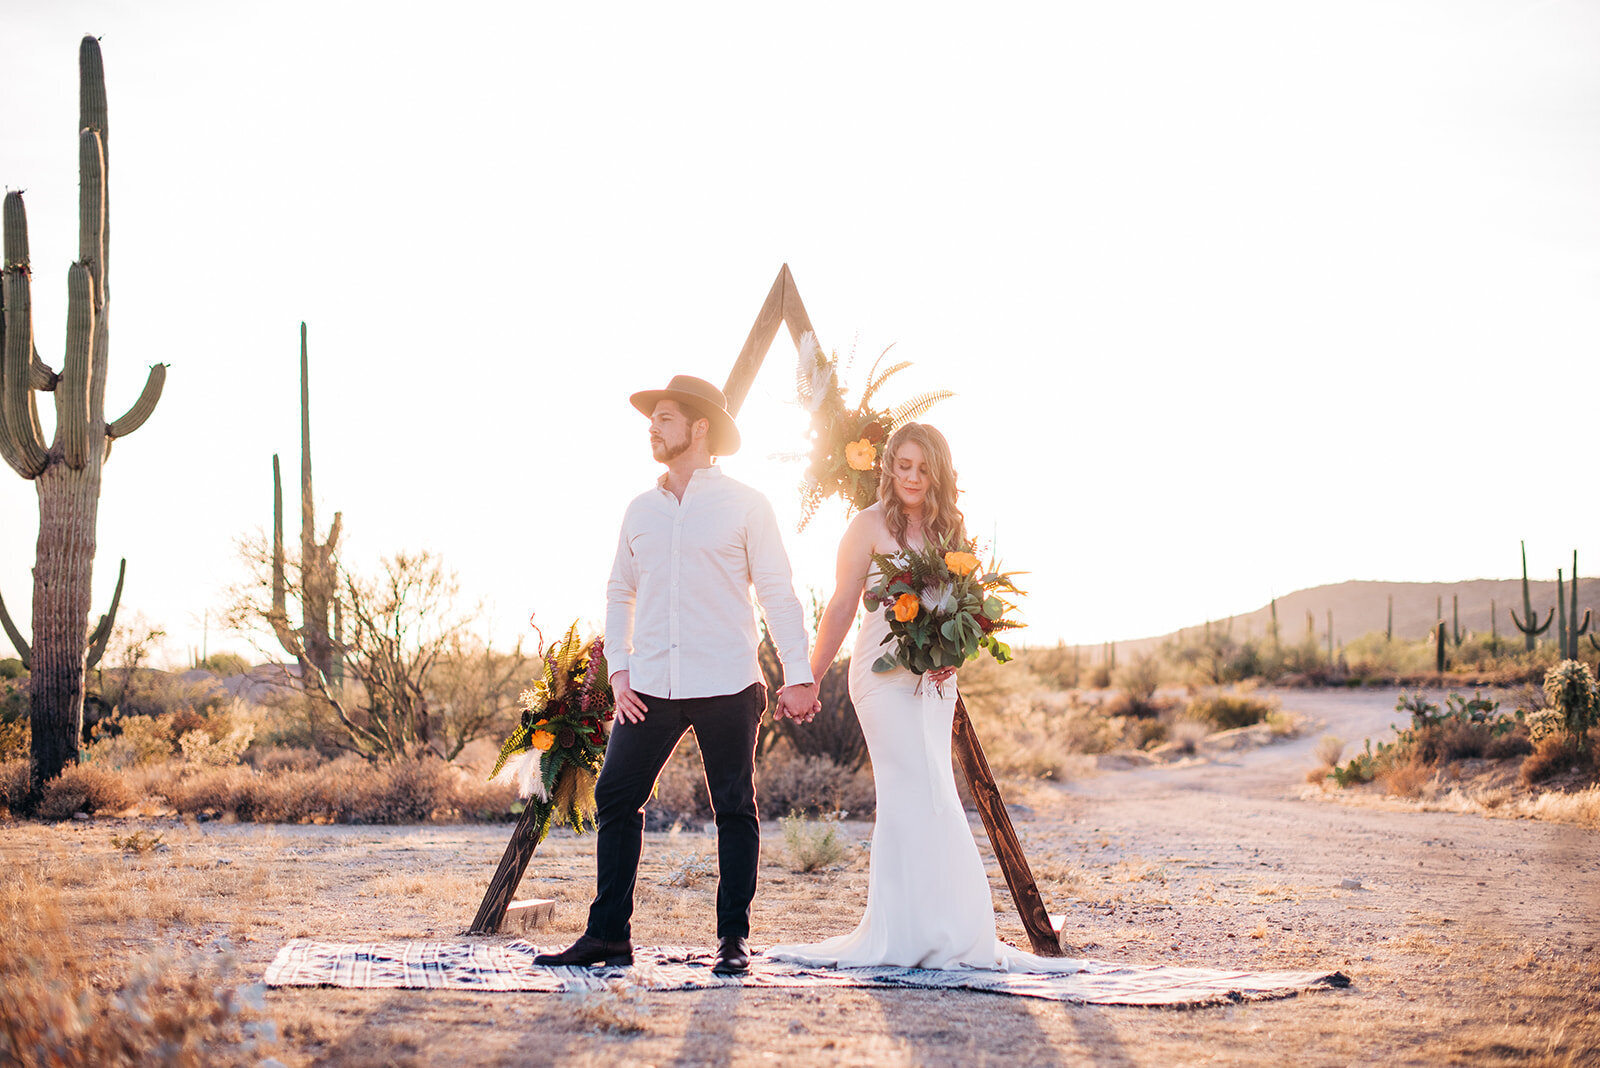 Tucson, Arizona Bride and Groom, Desert Wedding